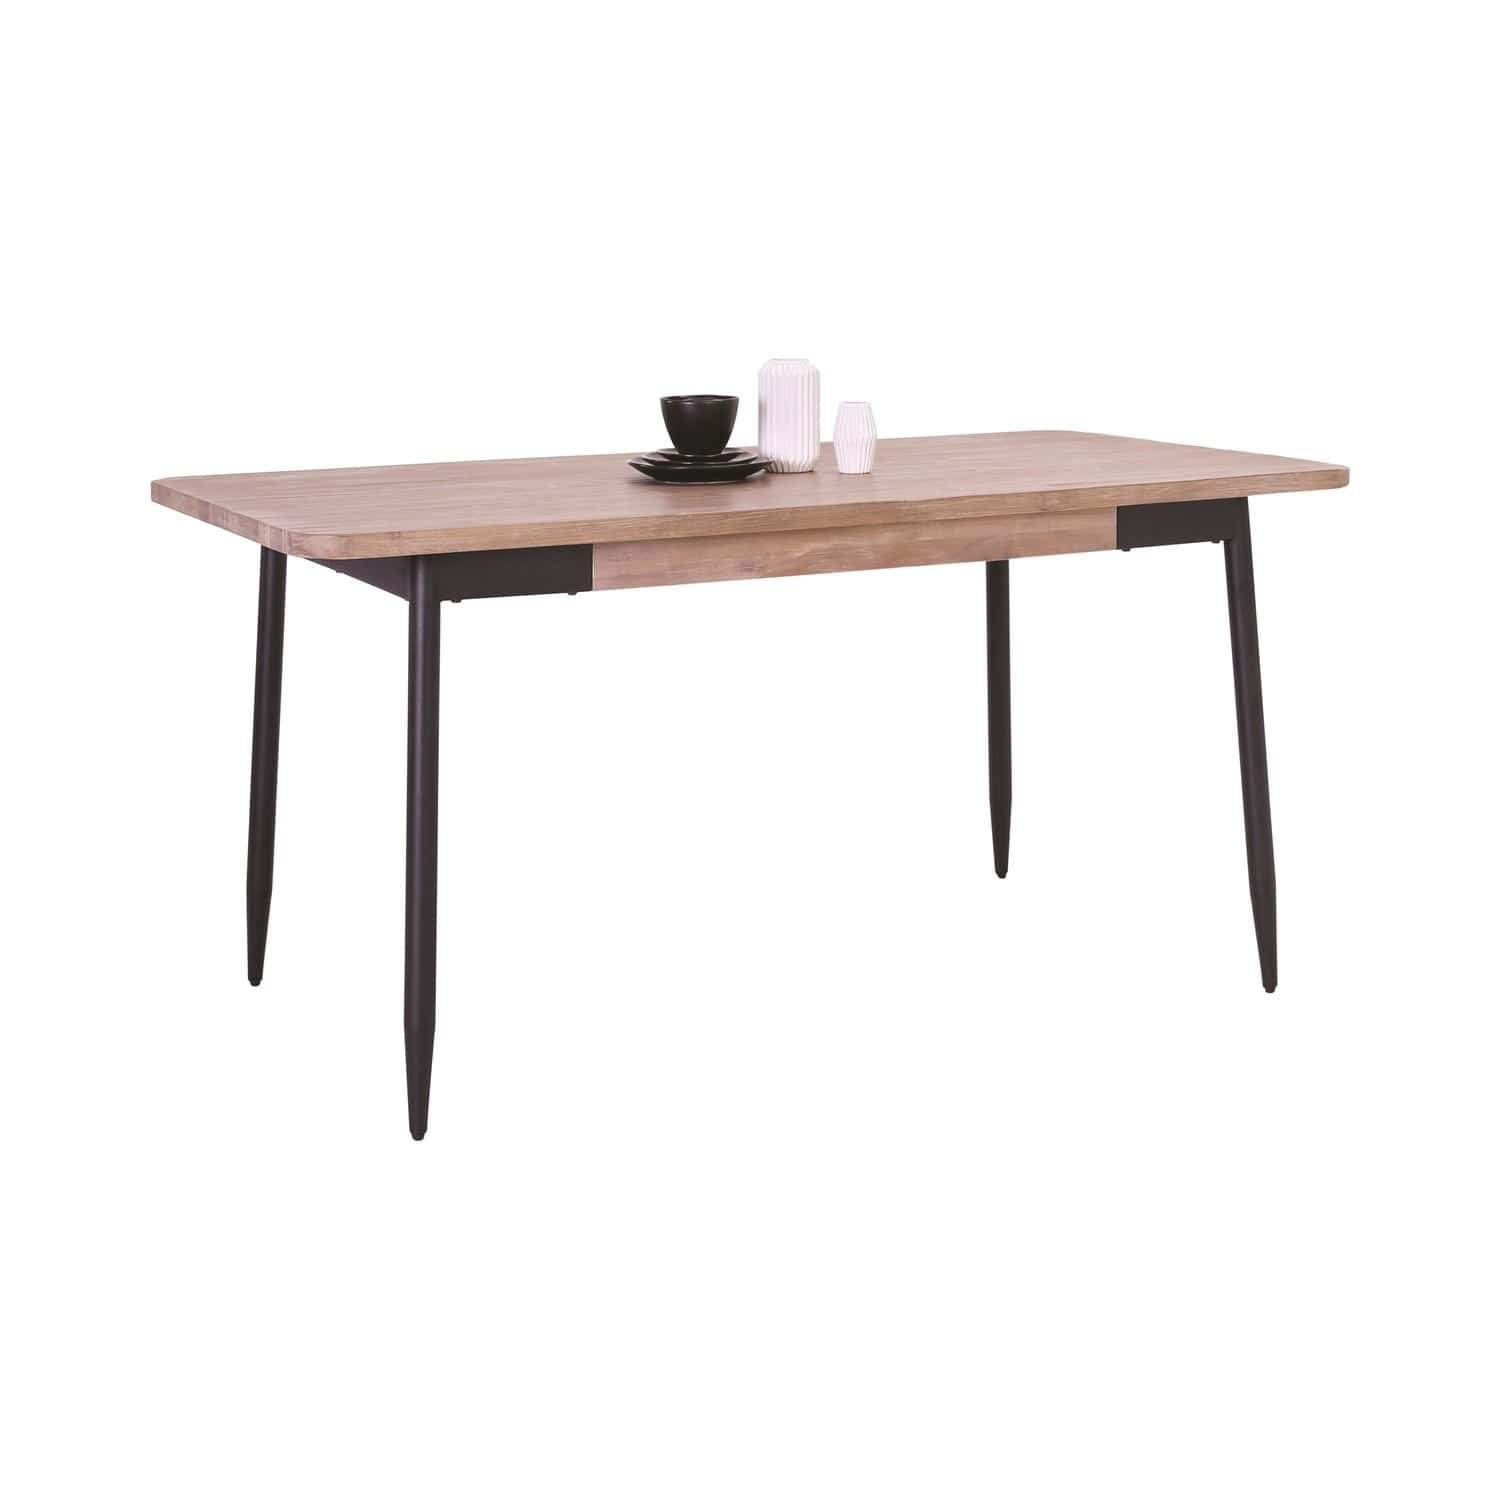 mfdesign88 DACHI 1.6M Dining Table In Taupe Colour Top